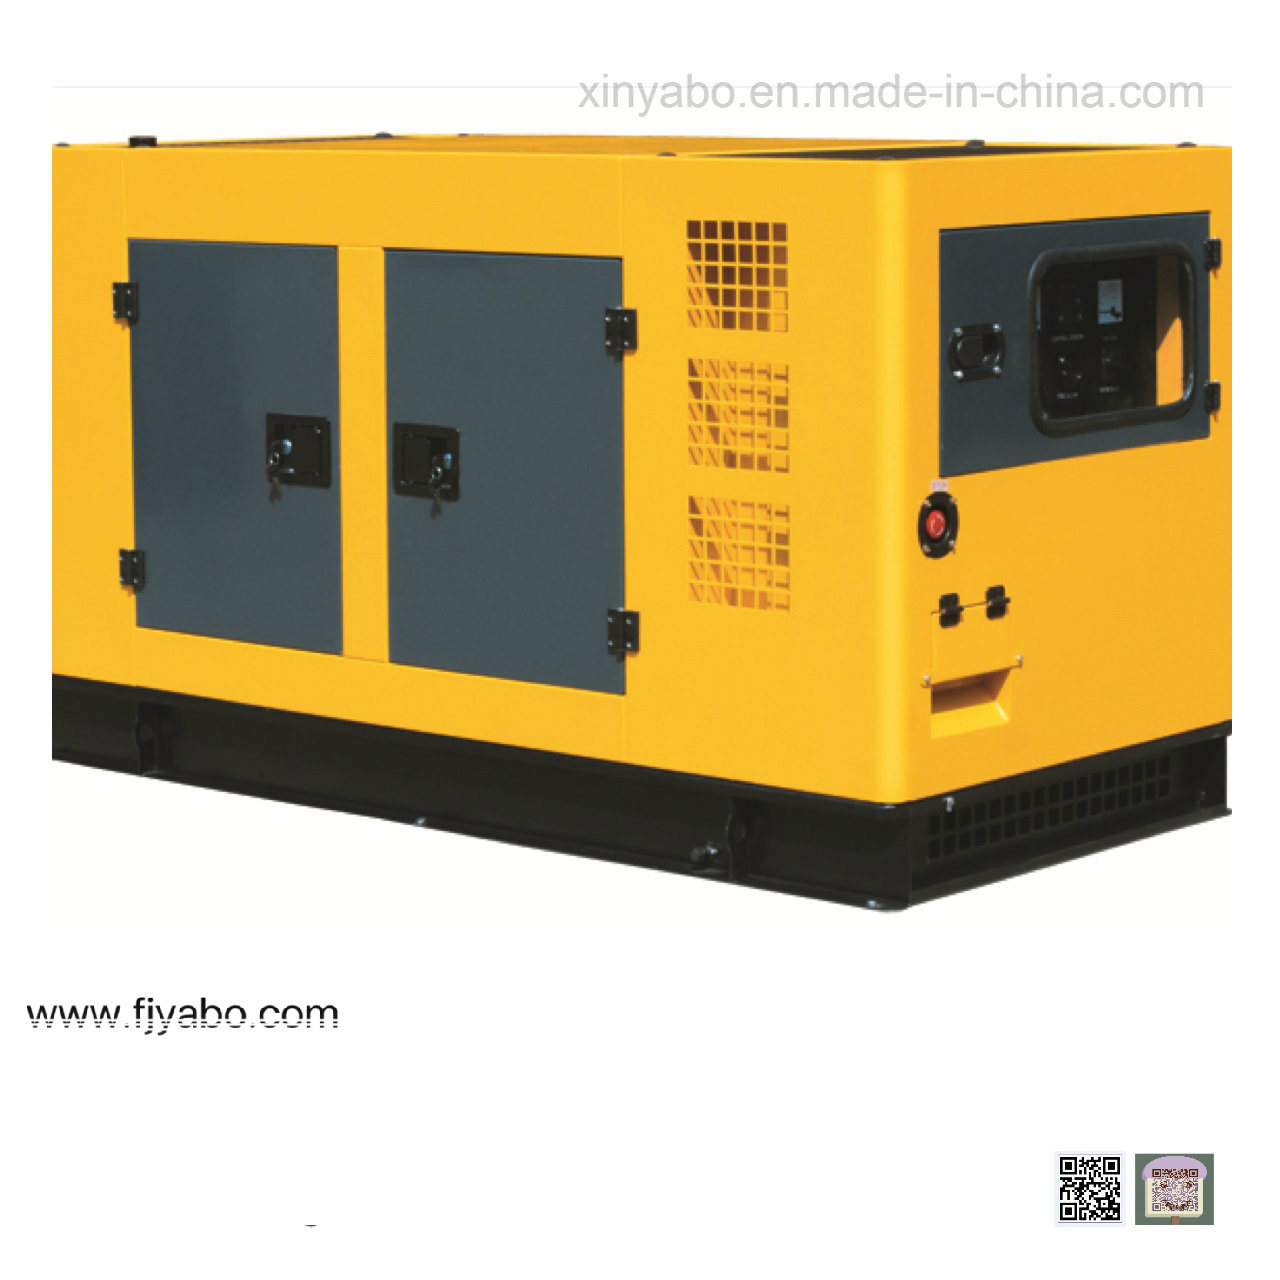 hight resolution of china electric portable power generator cummins silent canopy diesel ricardo diesel generator from 12kva to 250kva china diesel generator generator sets